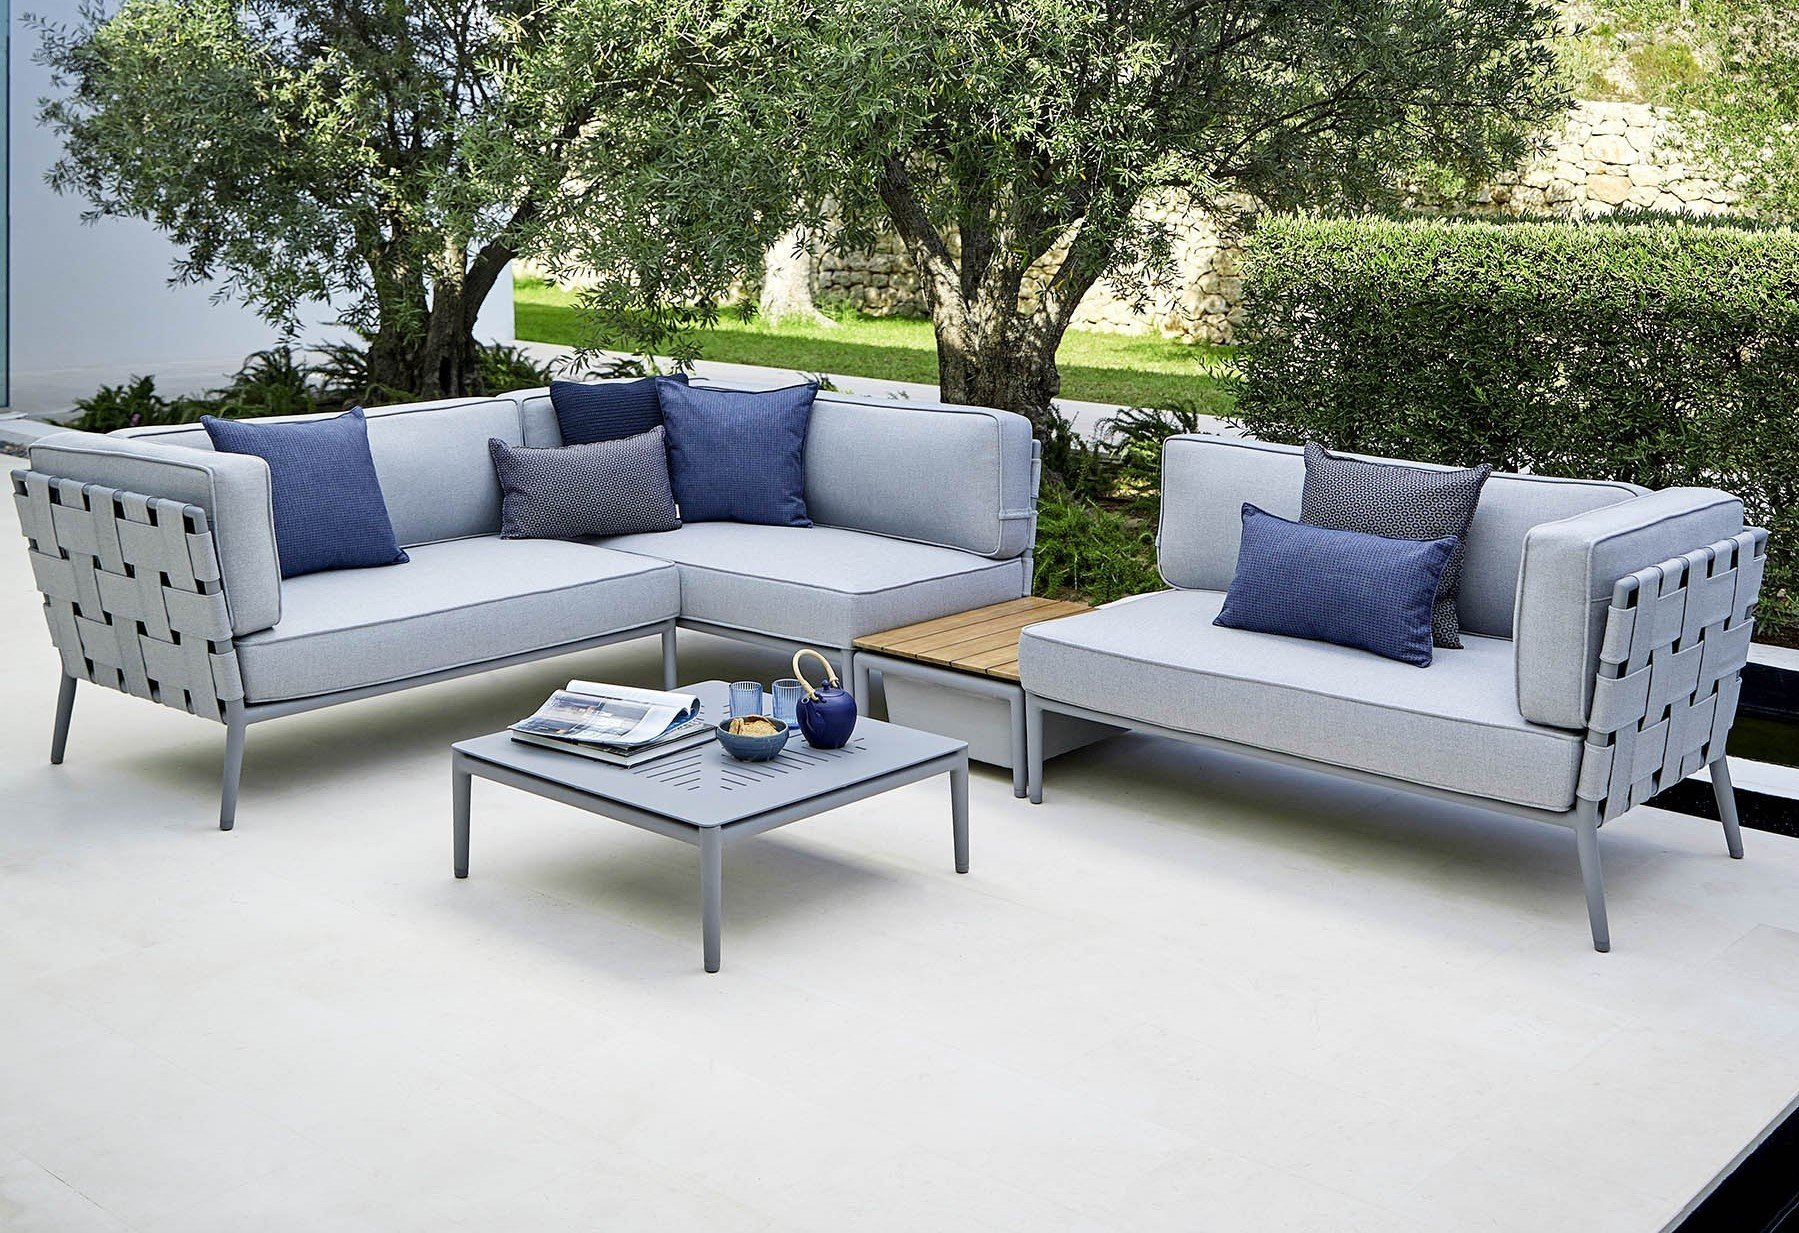 Conic 2-Seater Sofa from Cane-line, designed by Foersom & Hiort-Lorenzen MDD